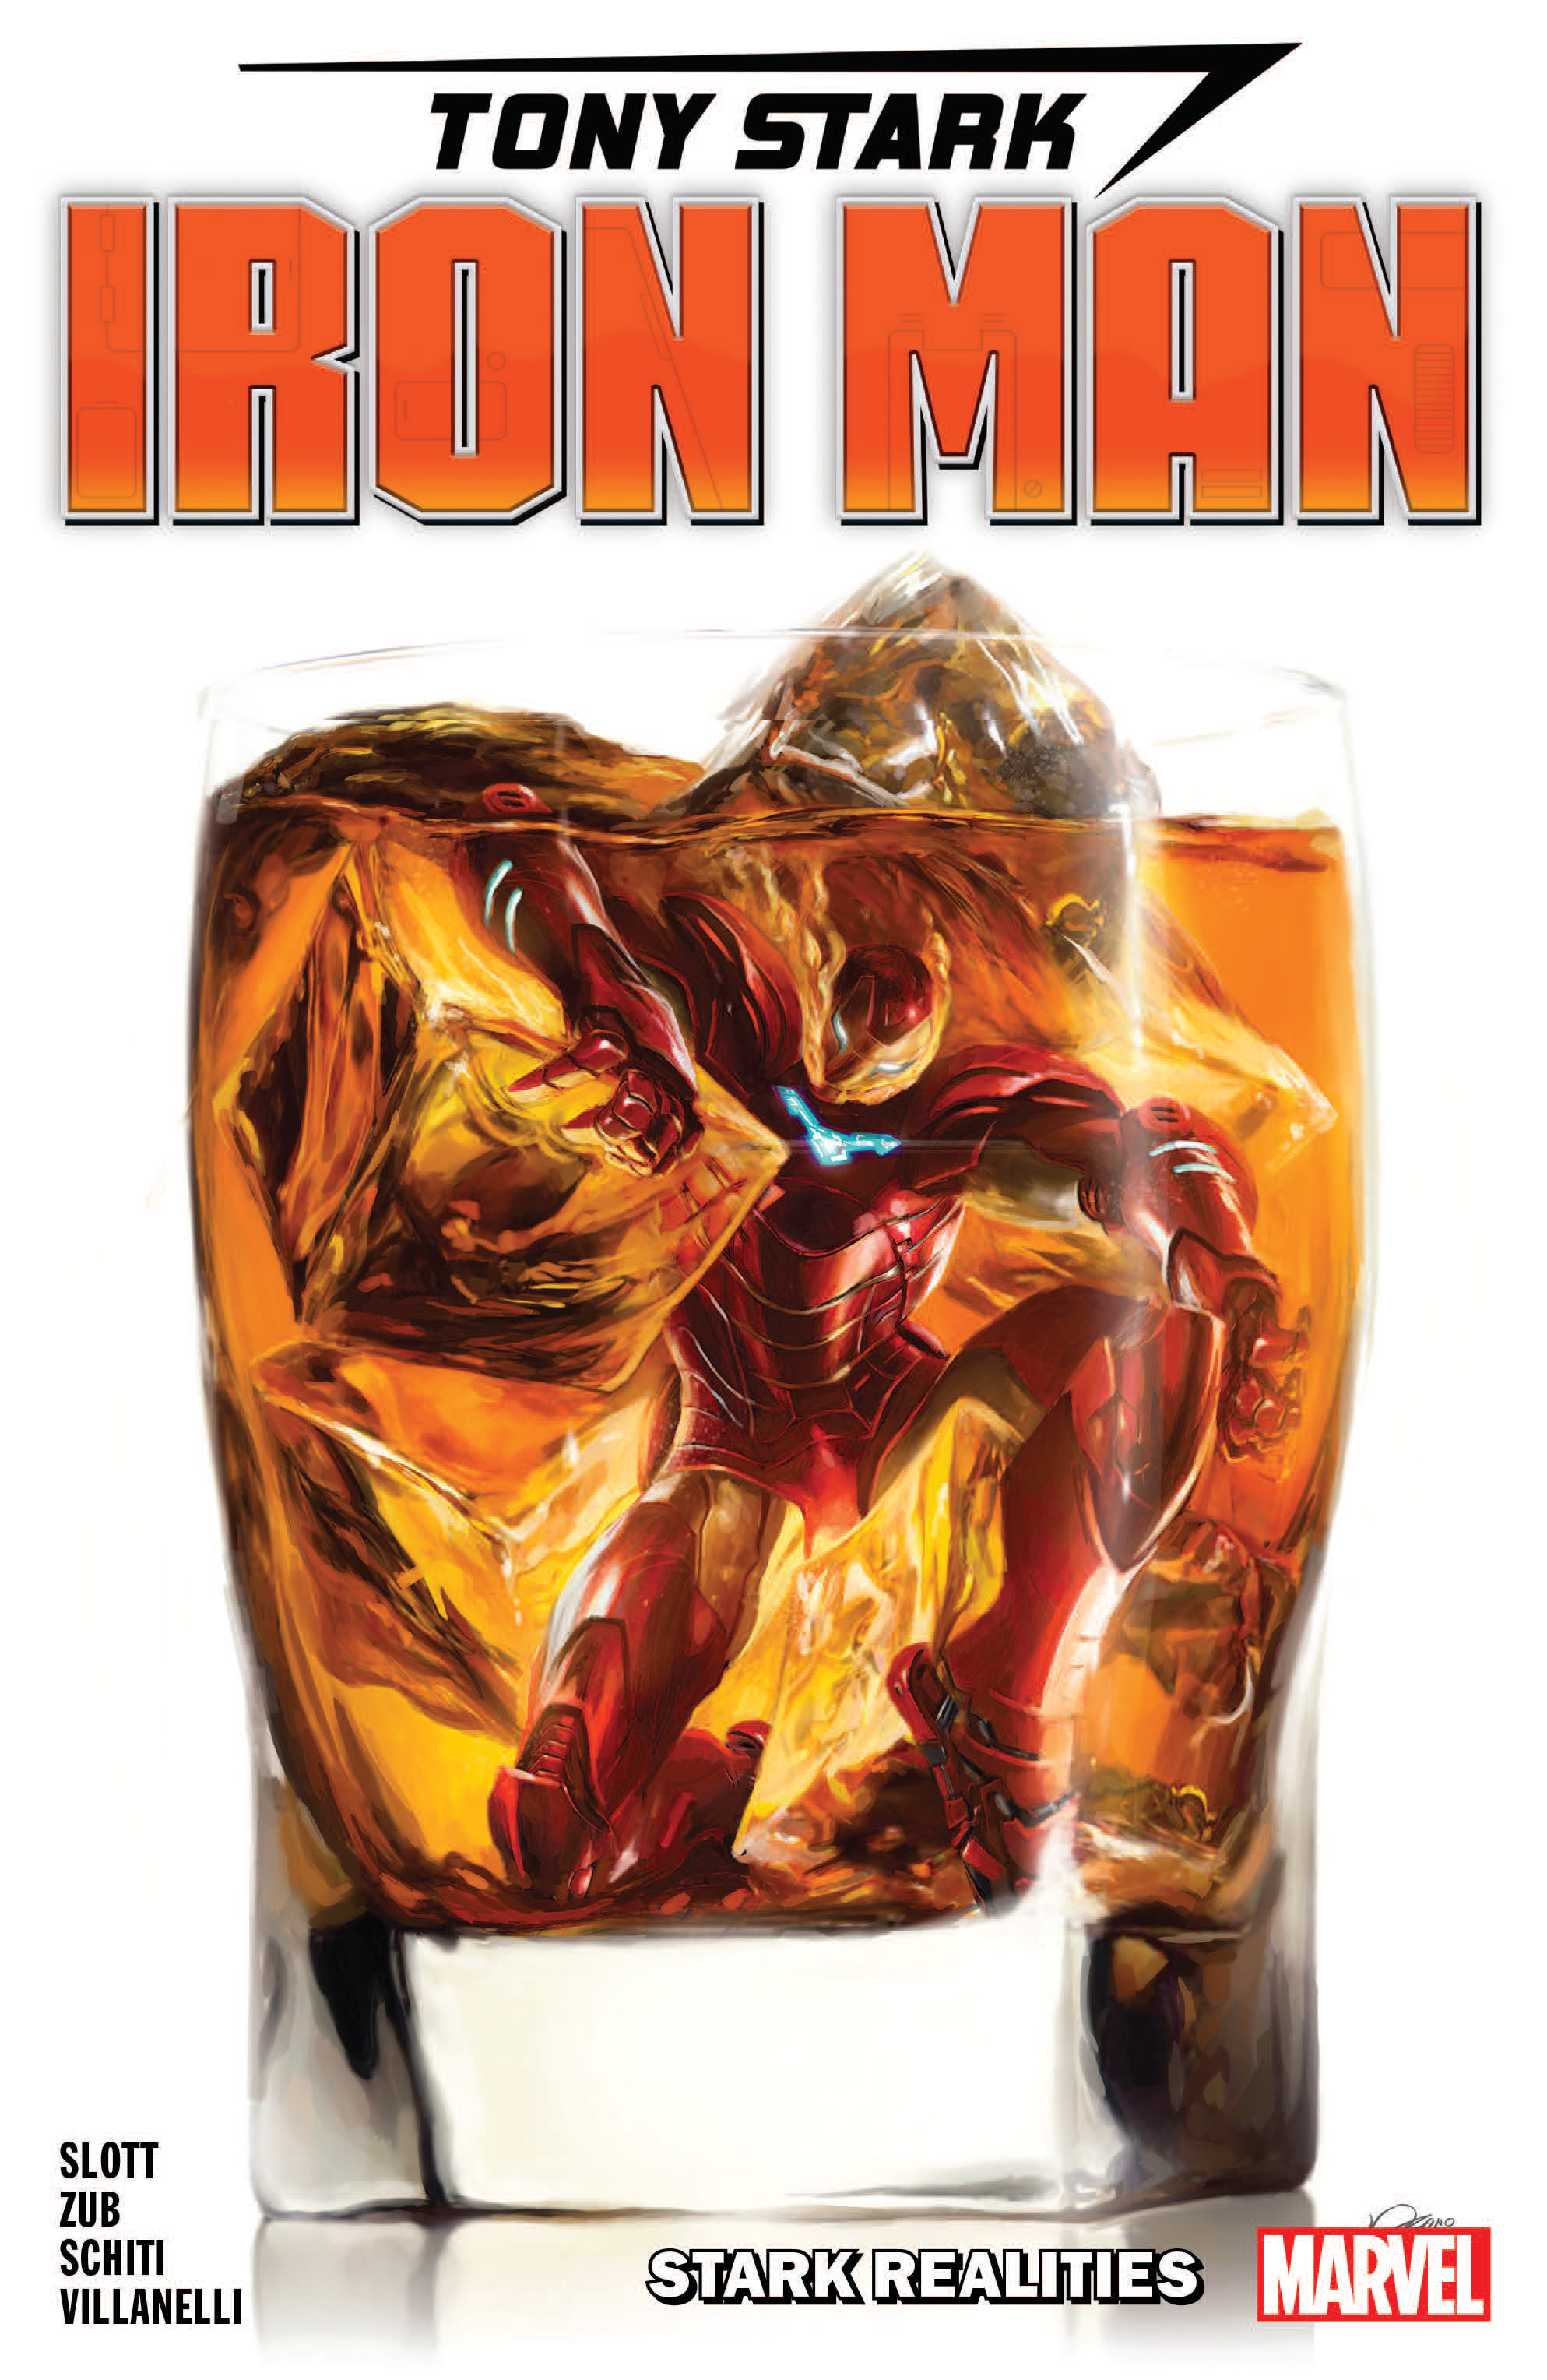 Tony Stark: Iron Man Vol. 2 - Stark Realities (Trade Paperback)